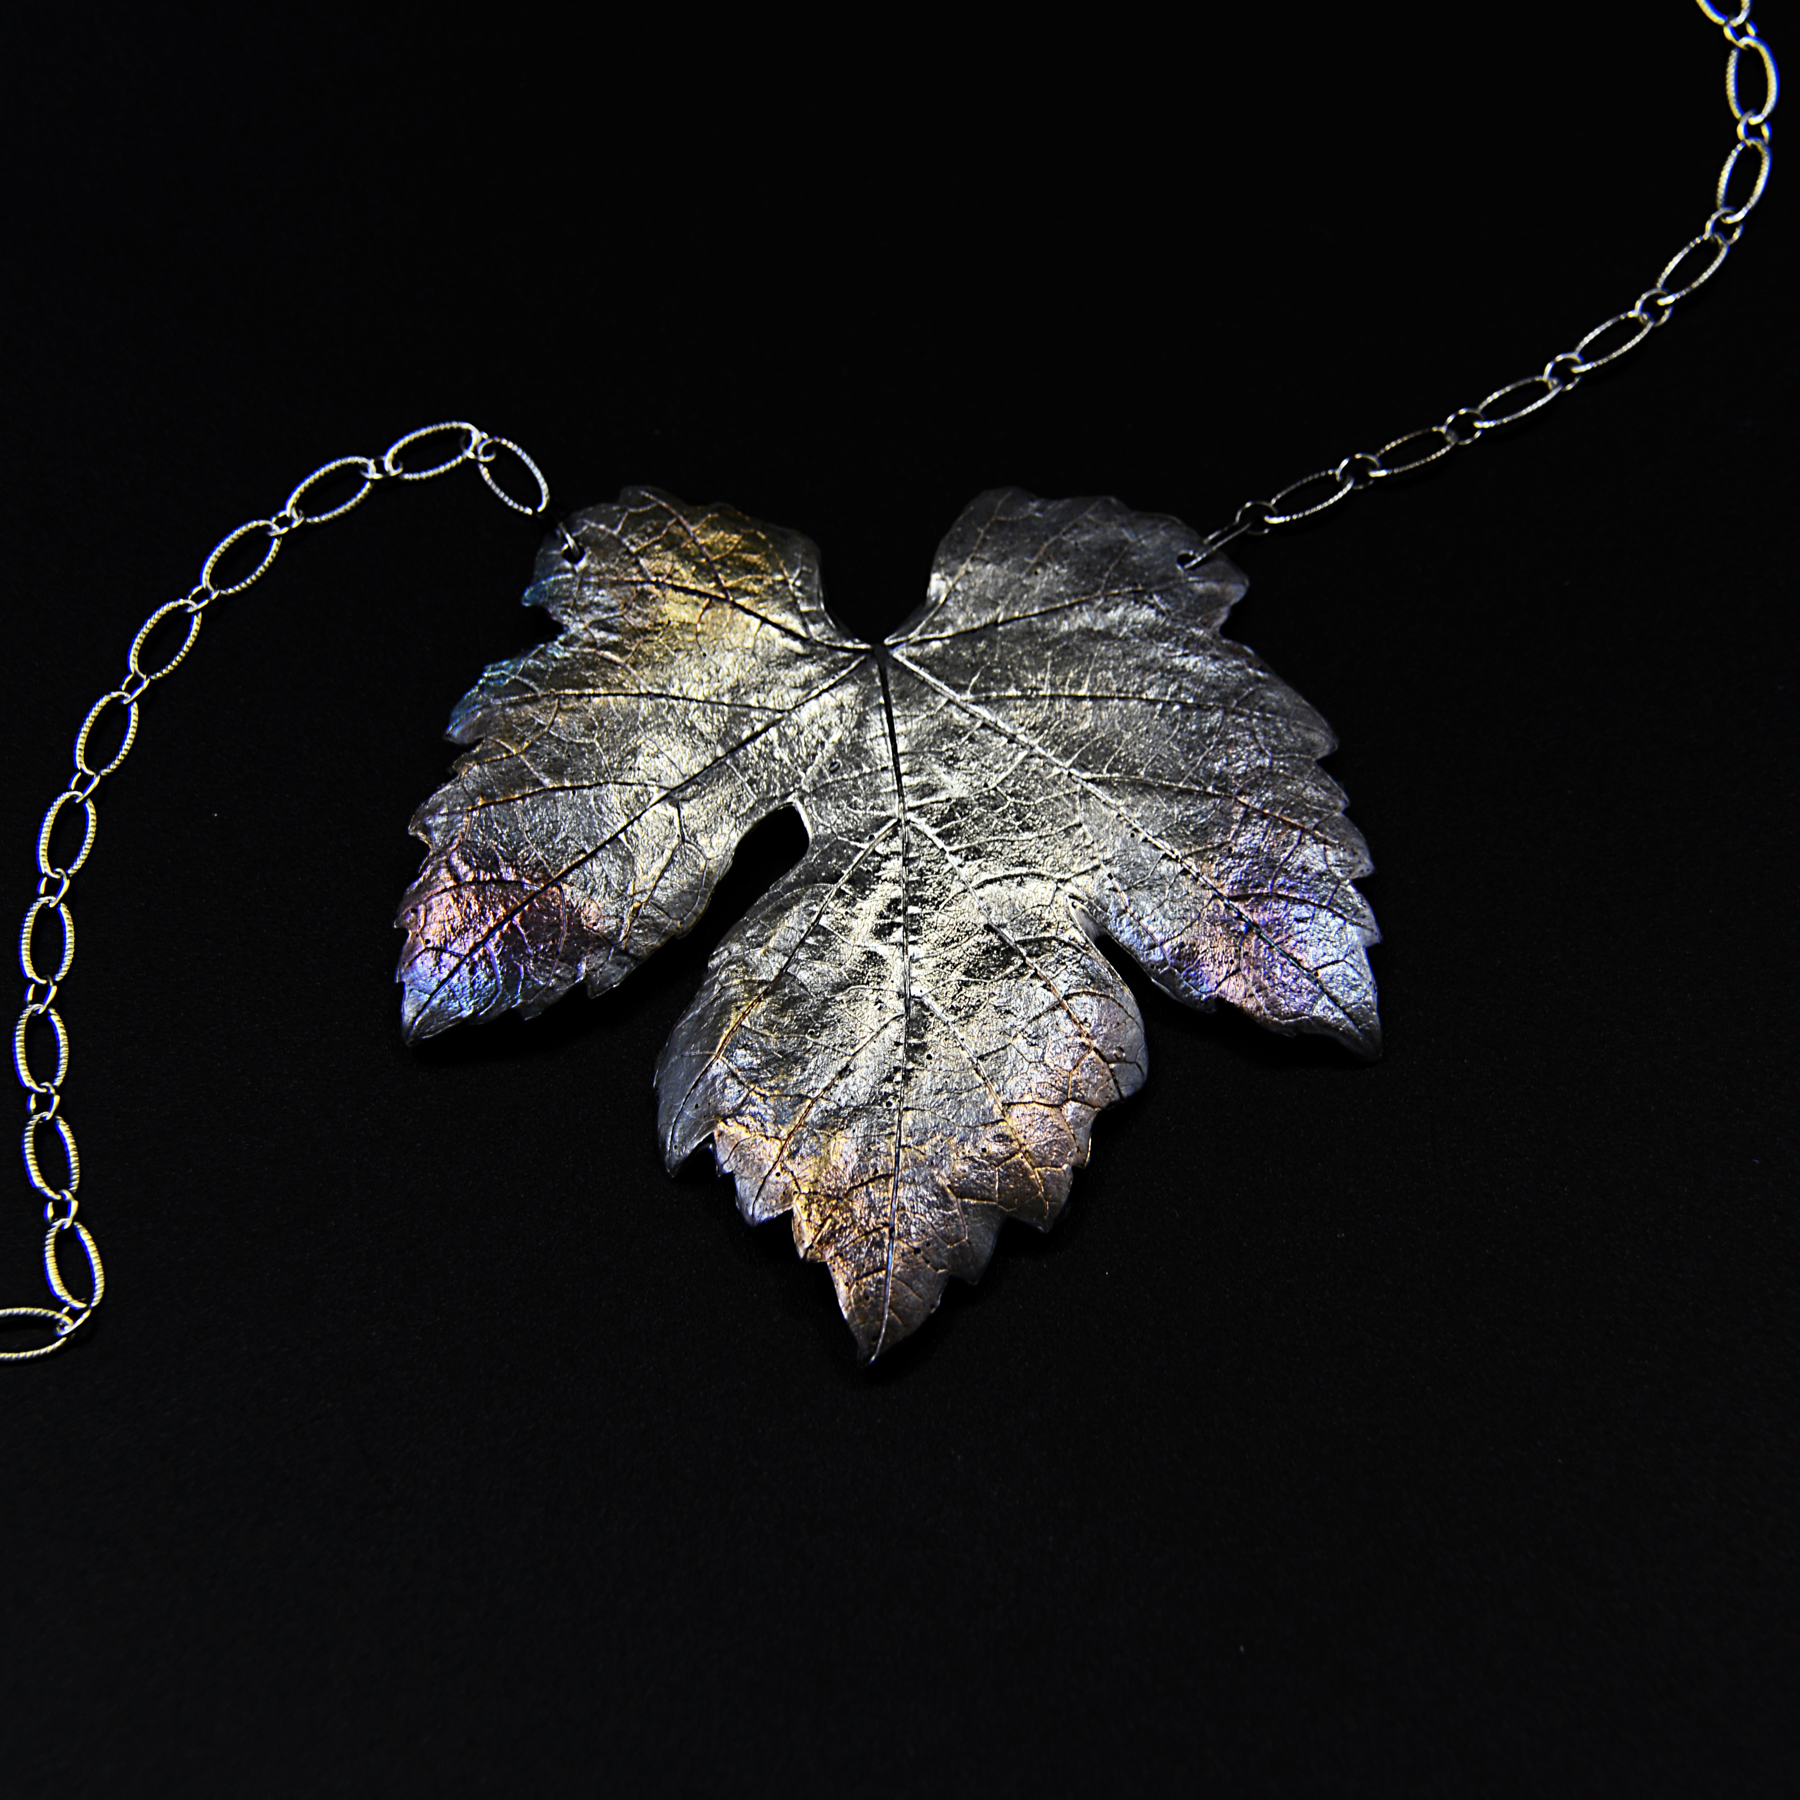 grape-leaf-necklace-michelle-hoting.jpg